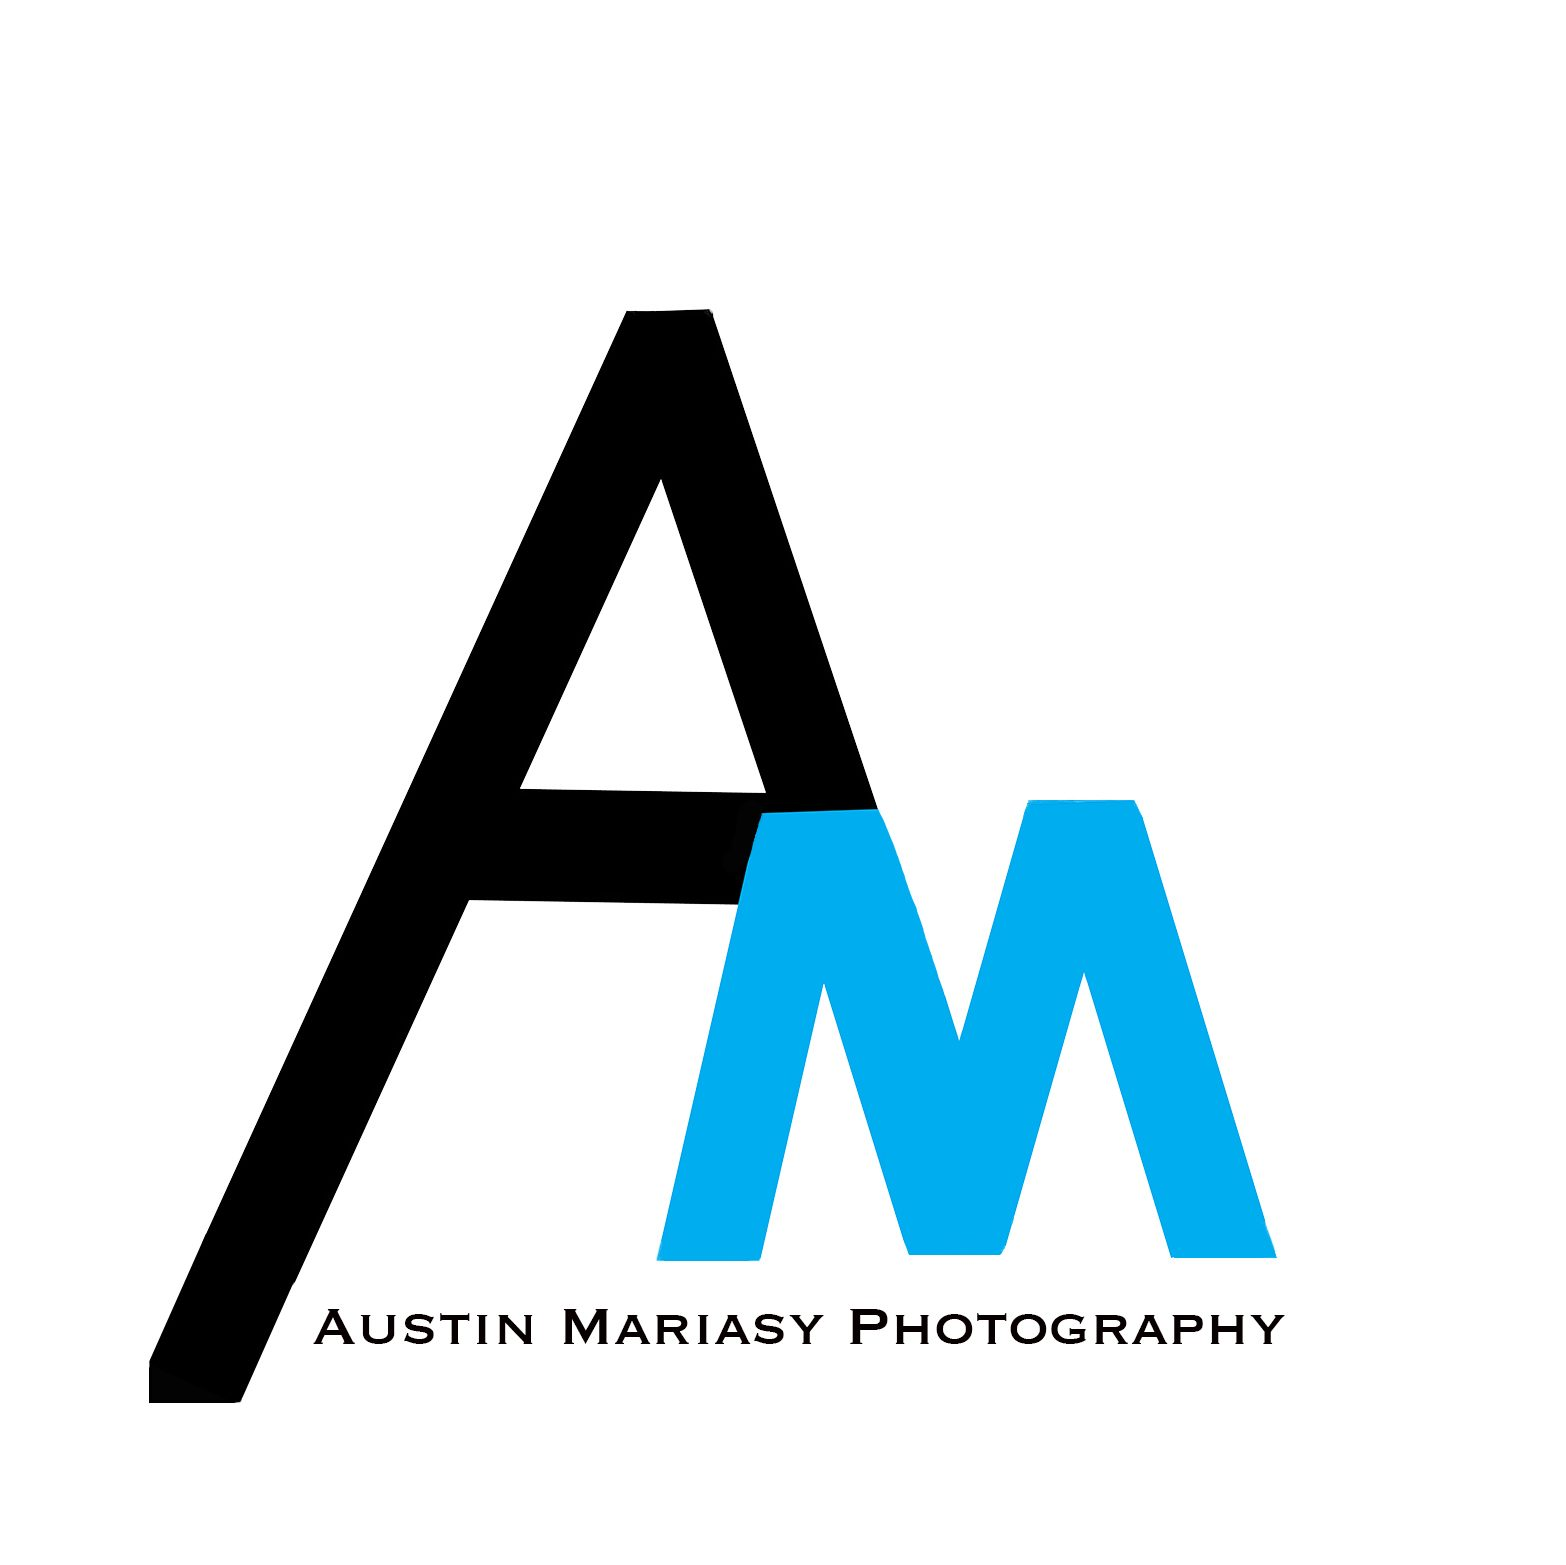 Austin Mariasy Photography